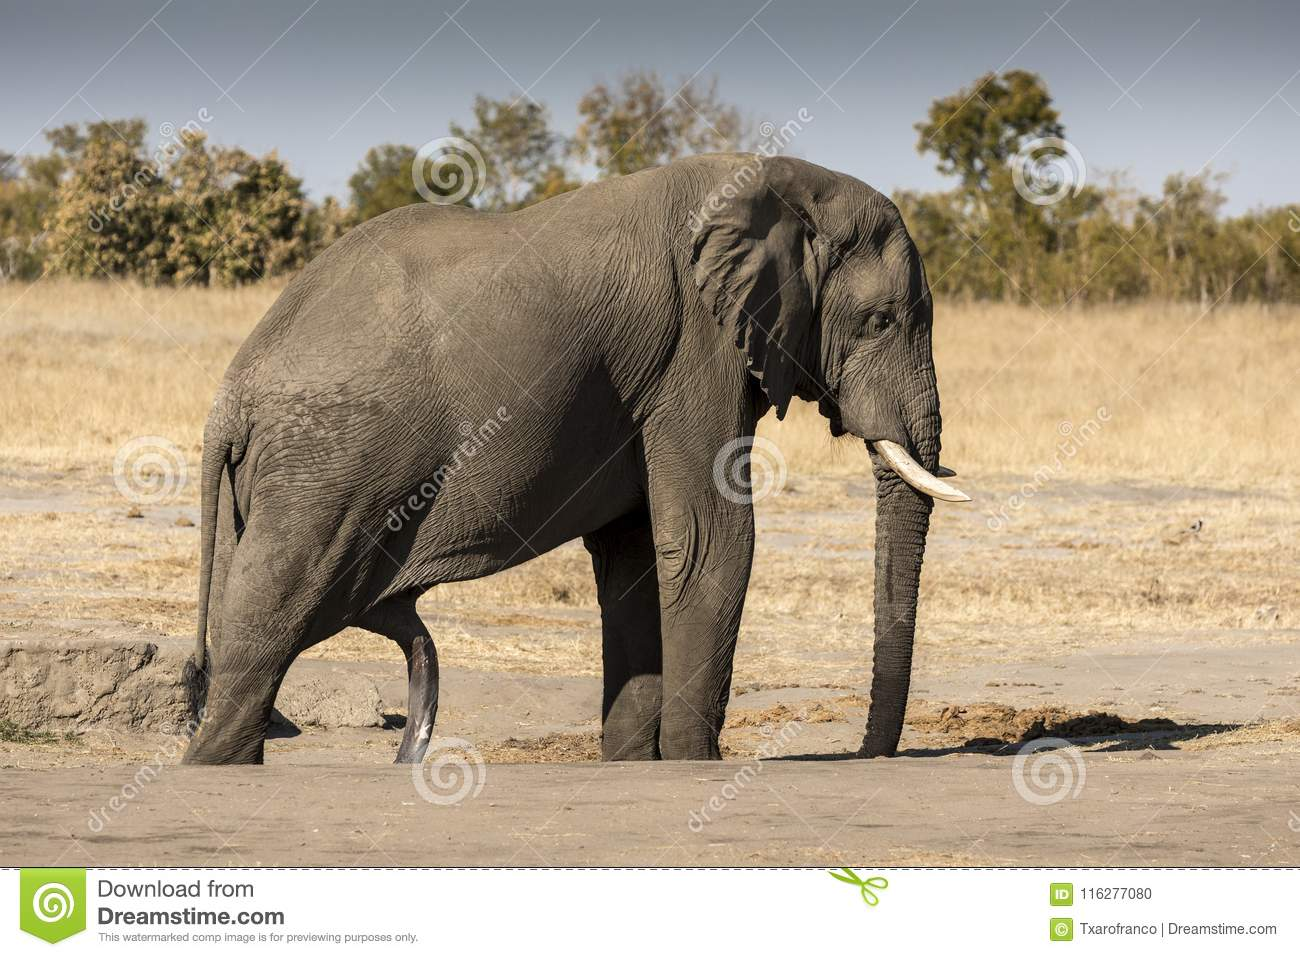 grote olifant penis